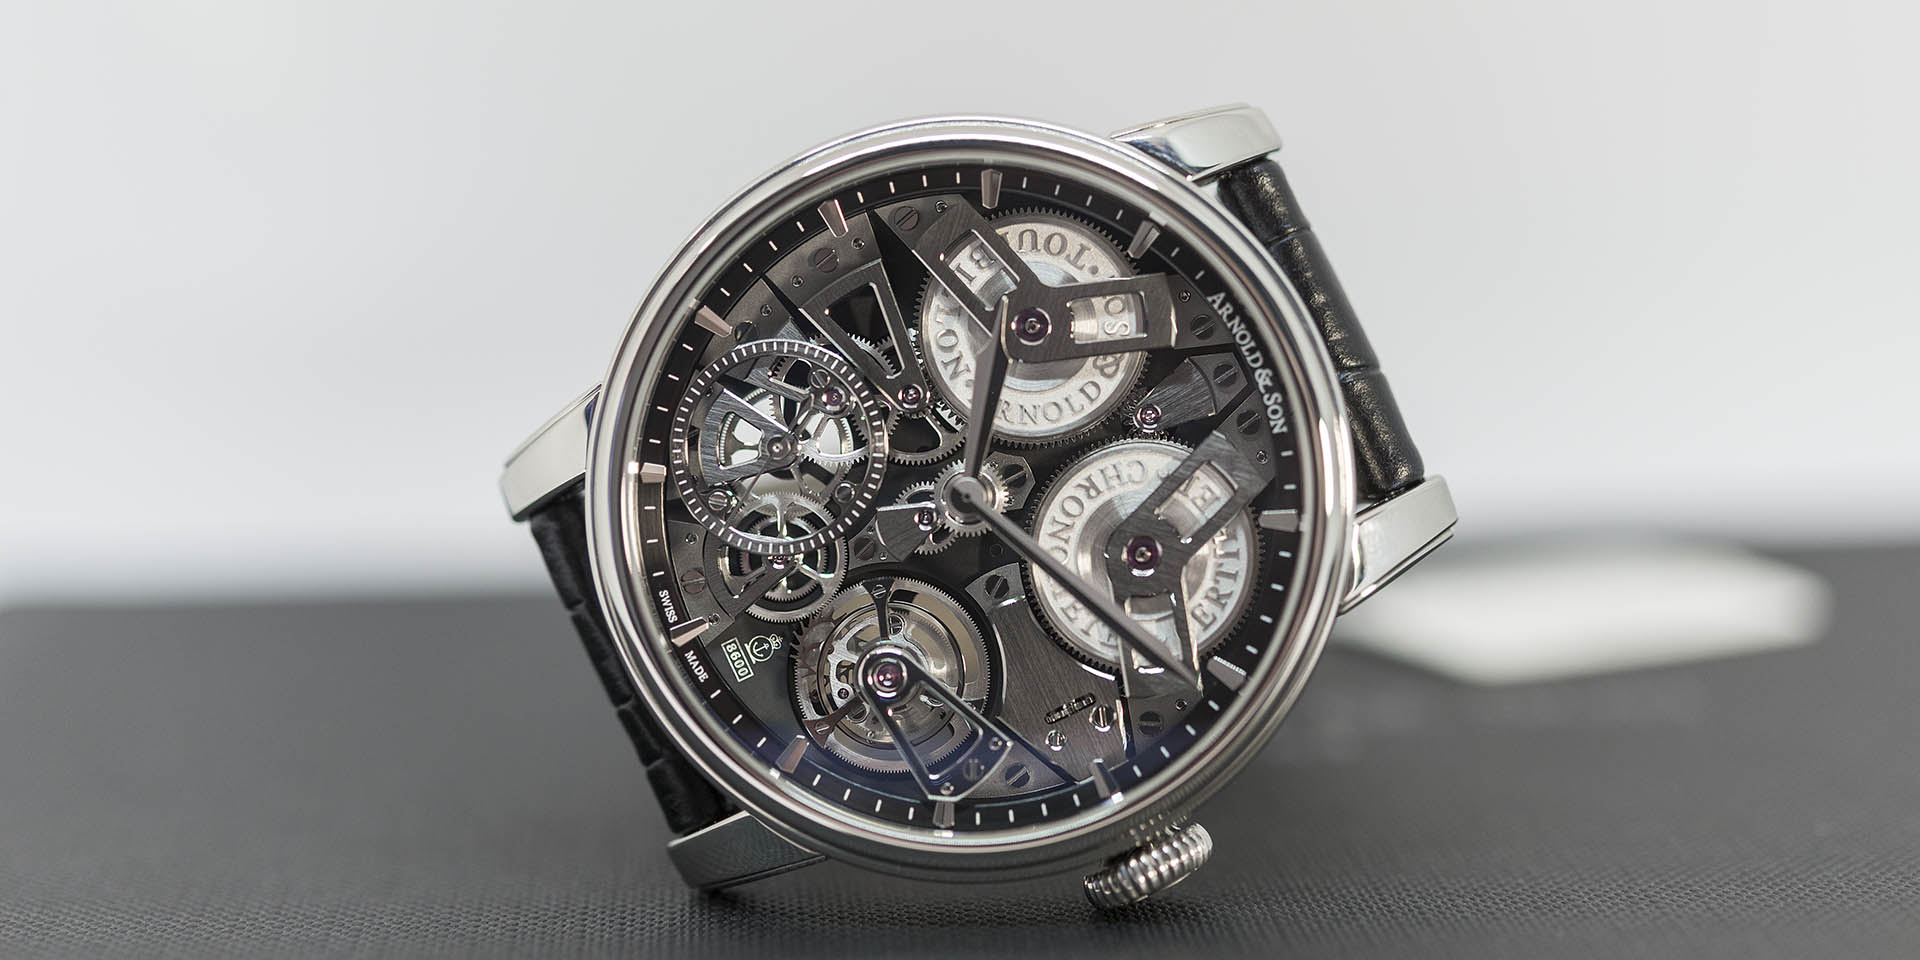 1etas-b01a-c113s-arnold-son-tourbillon-chronometer-no-36-tribute-edition-3.jpg